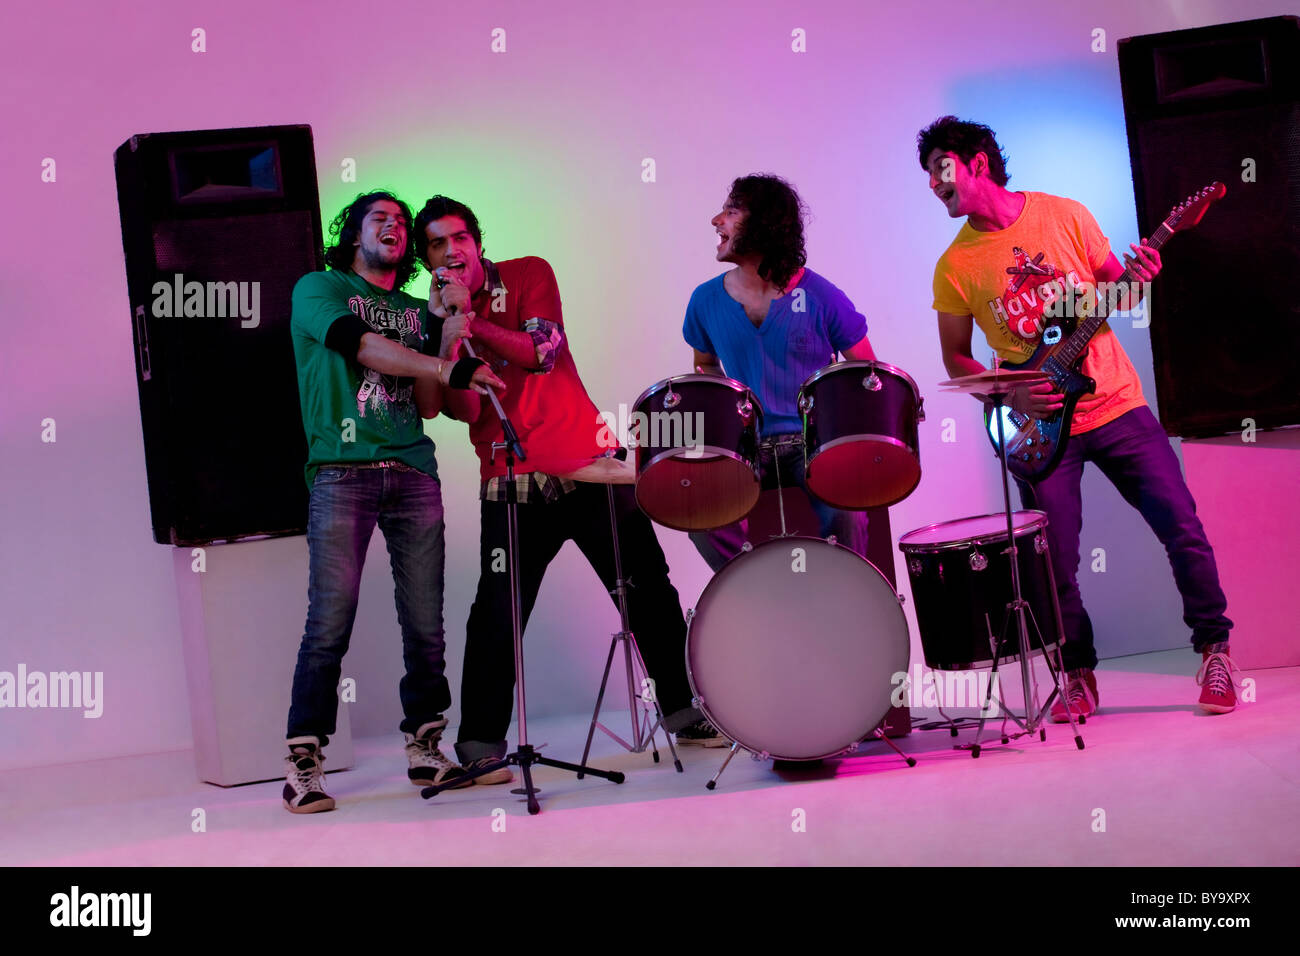 Boys of a rock band enjoying themselves - Stock Image